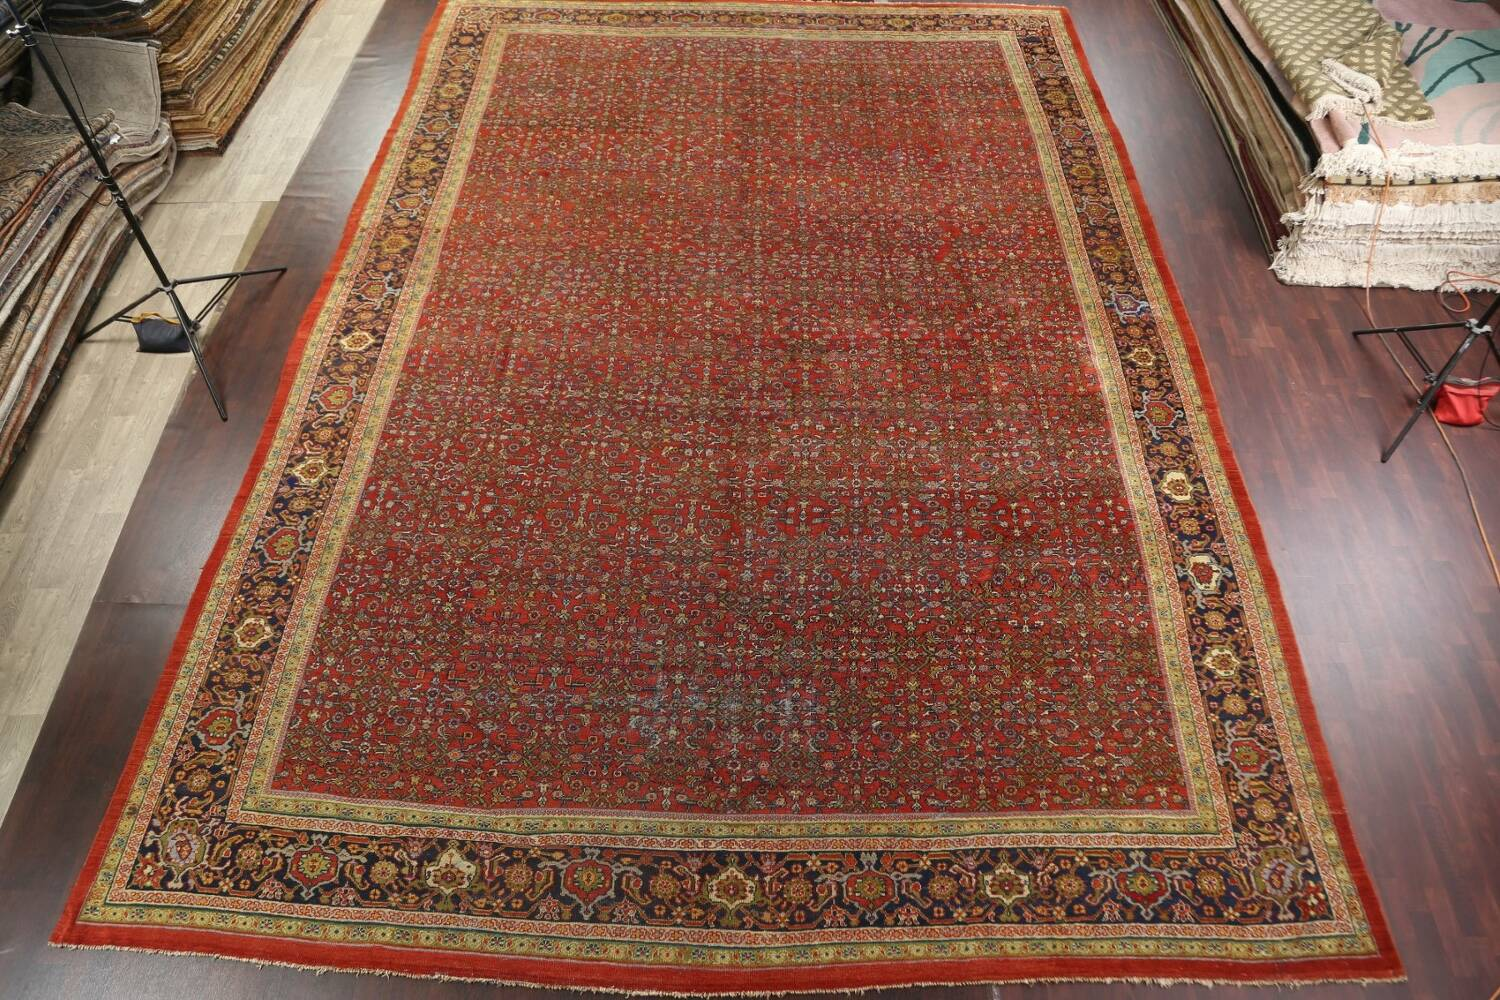 Pre-1900 Antique Vegetable Dye Sultanabad Persian Rug 15x22 image 15